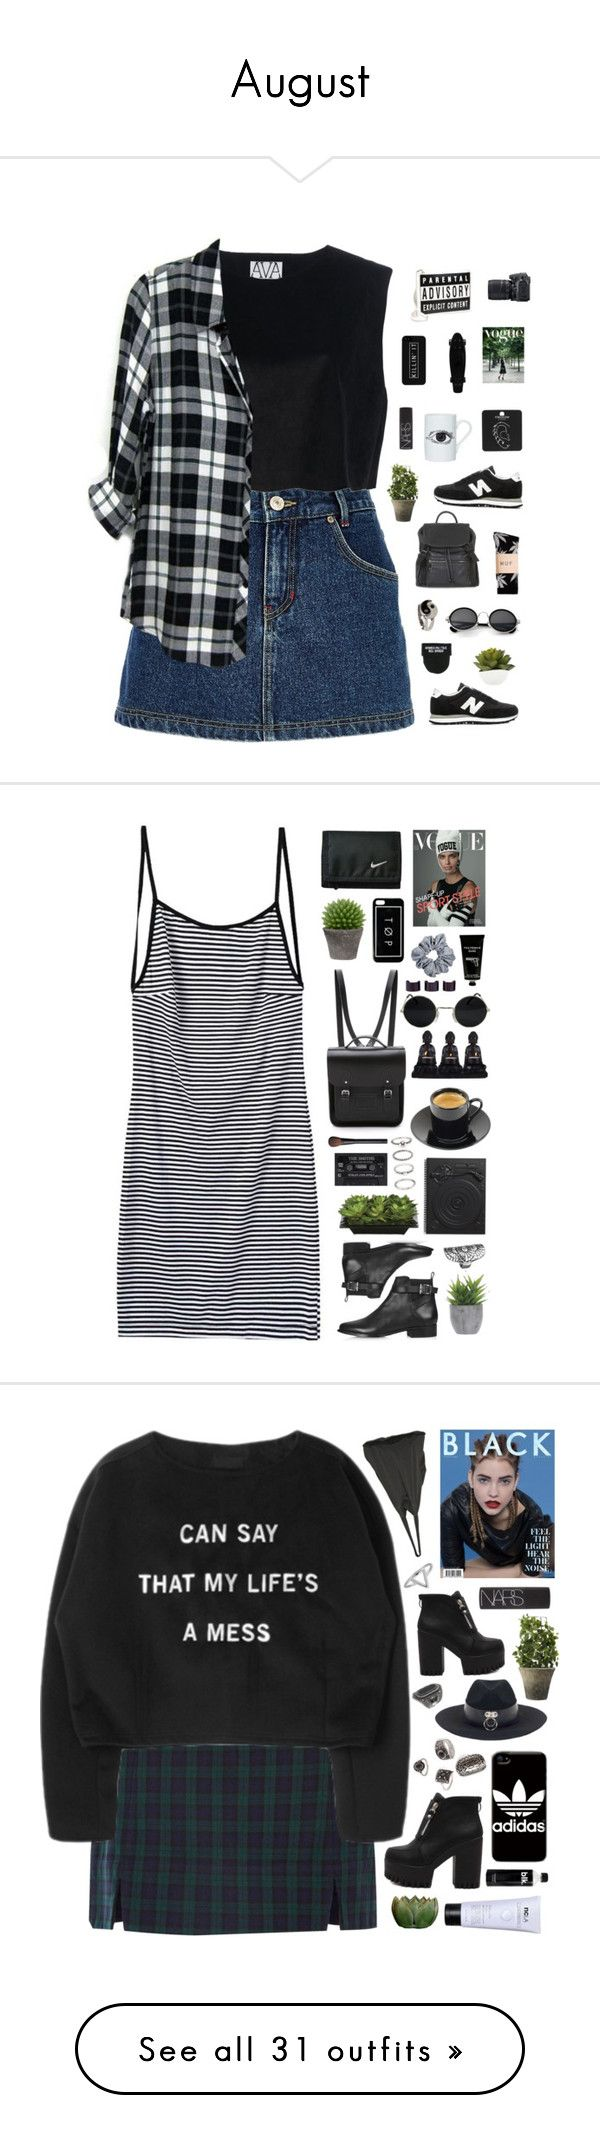 """August"" by amy-lopez-cxxi ❤ liked on Polyvore featuring River Island, New Balance, Ava Catherside, Street Level, Nikon, HUF, Topshop, DOMESTIC, NARS Cosmetics and Rails"